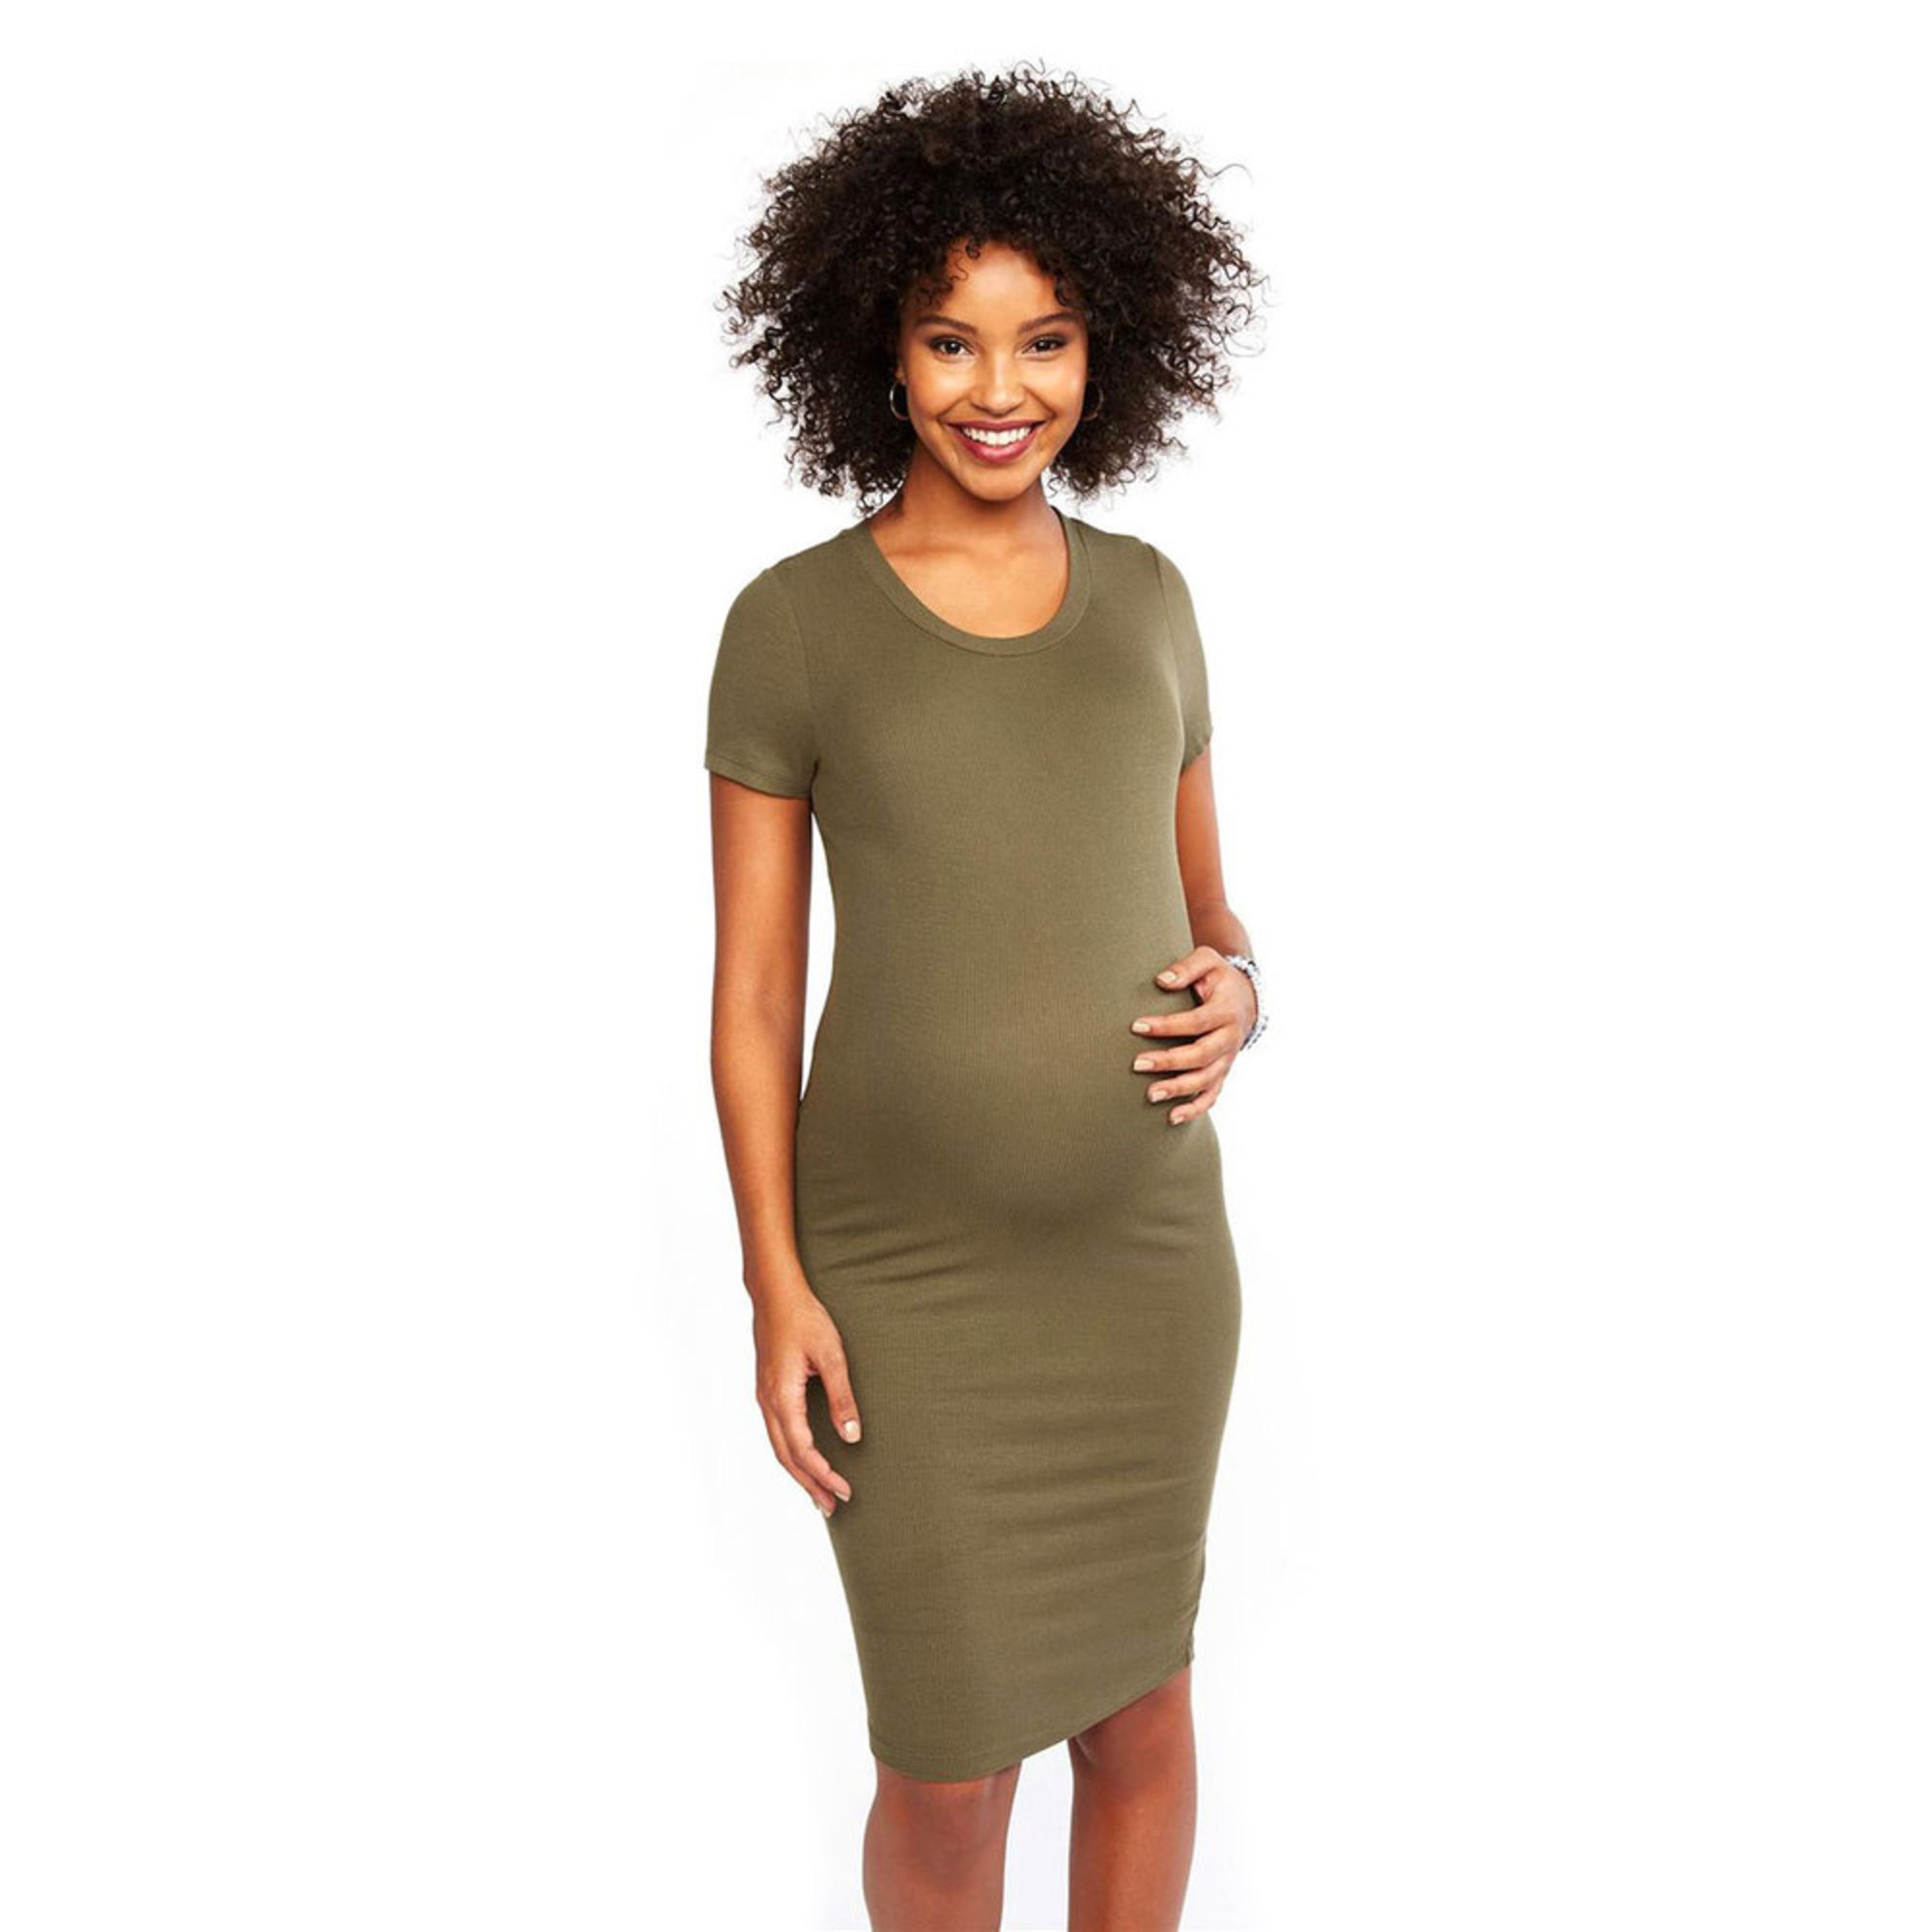 fe740c3444390 Motherhood Maternity Ribbed Dress | Maternity Dresses | Apparel ...